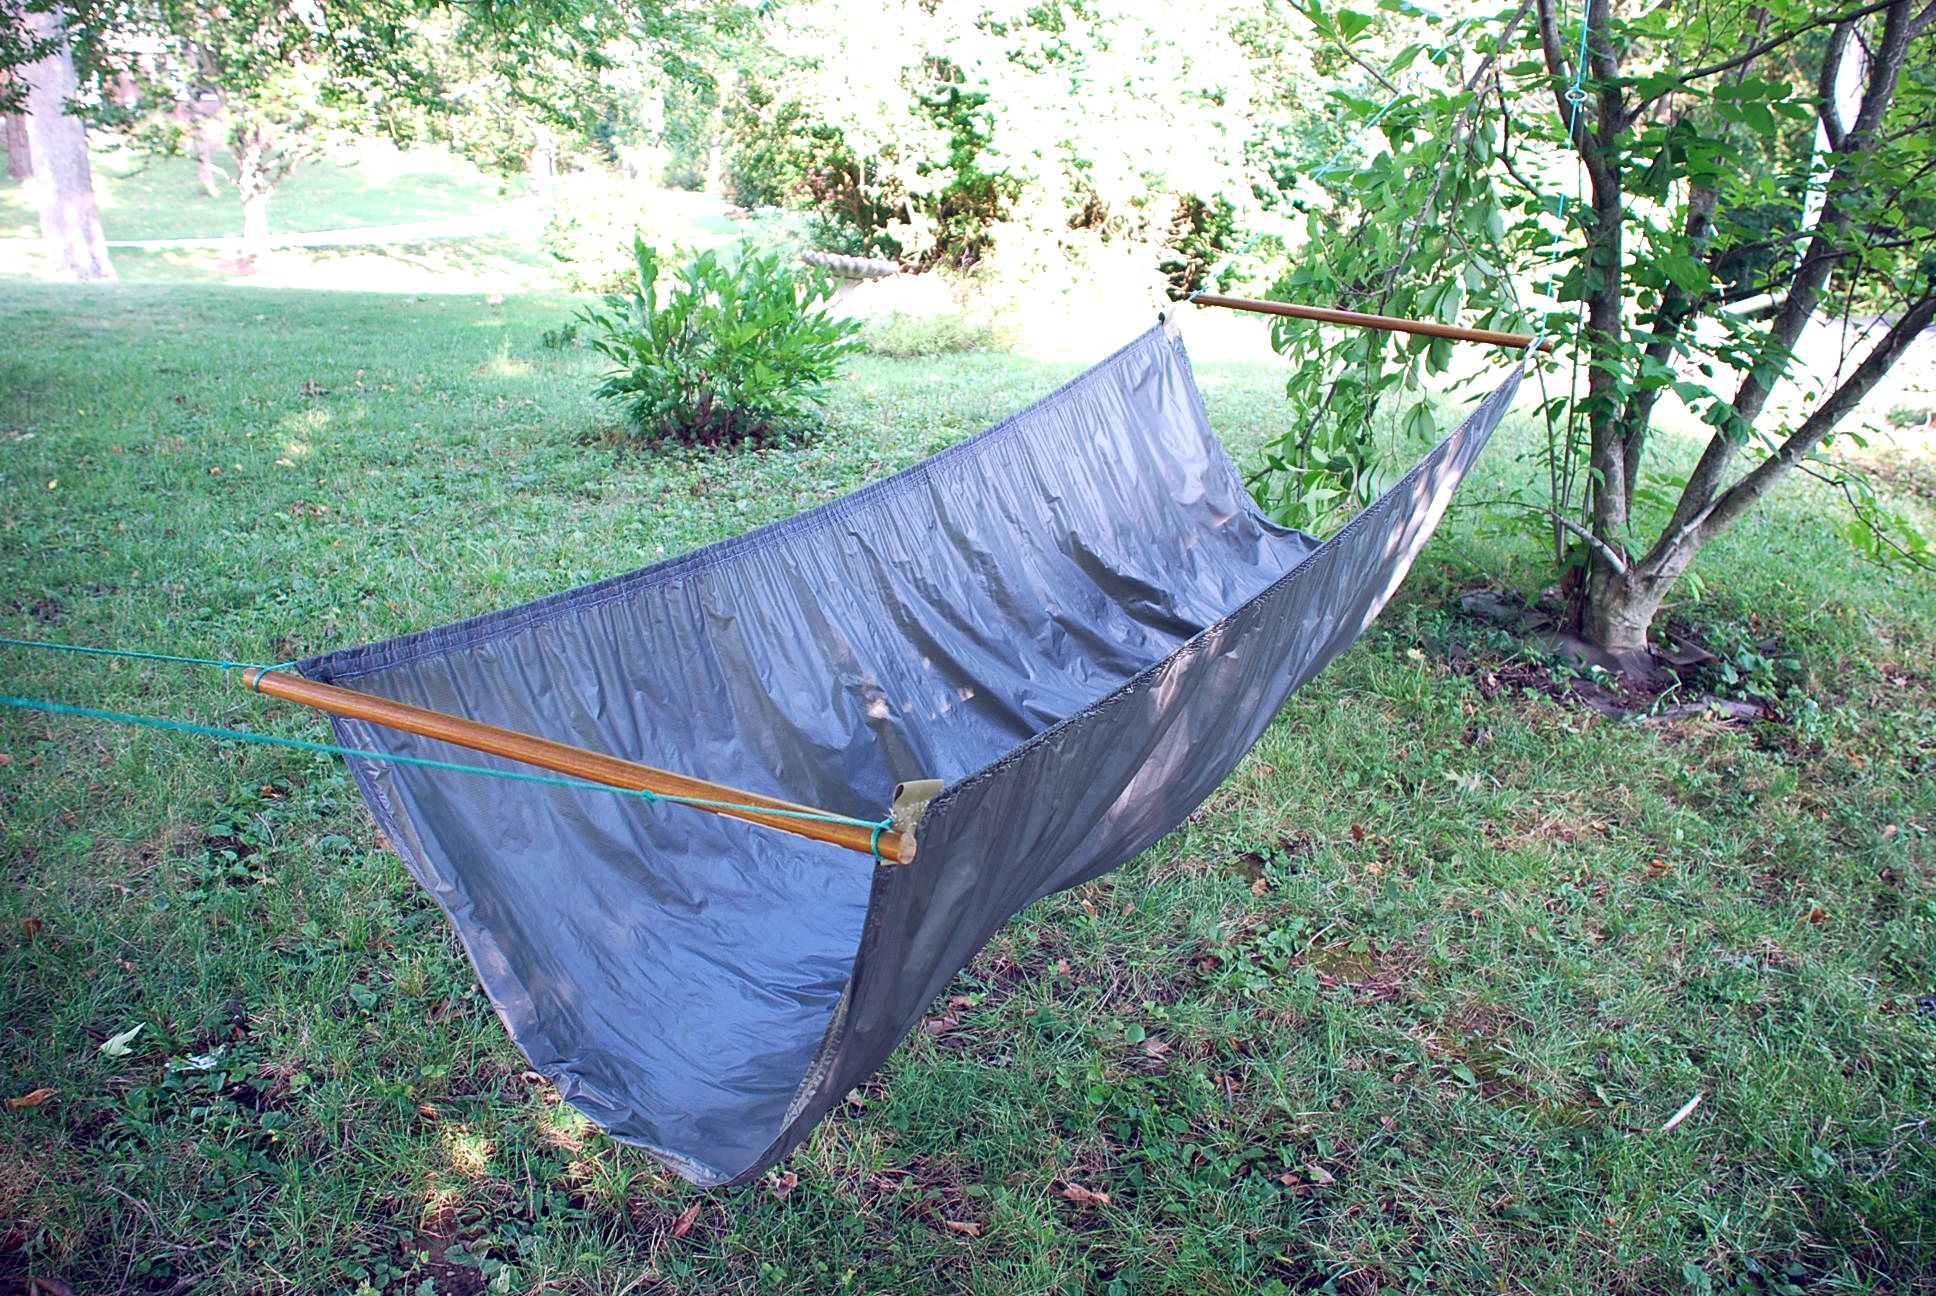 Medium image of my homemade bridge hammock and my mosquito hammock